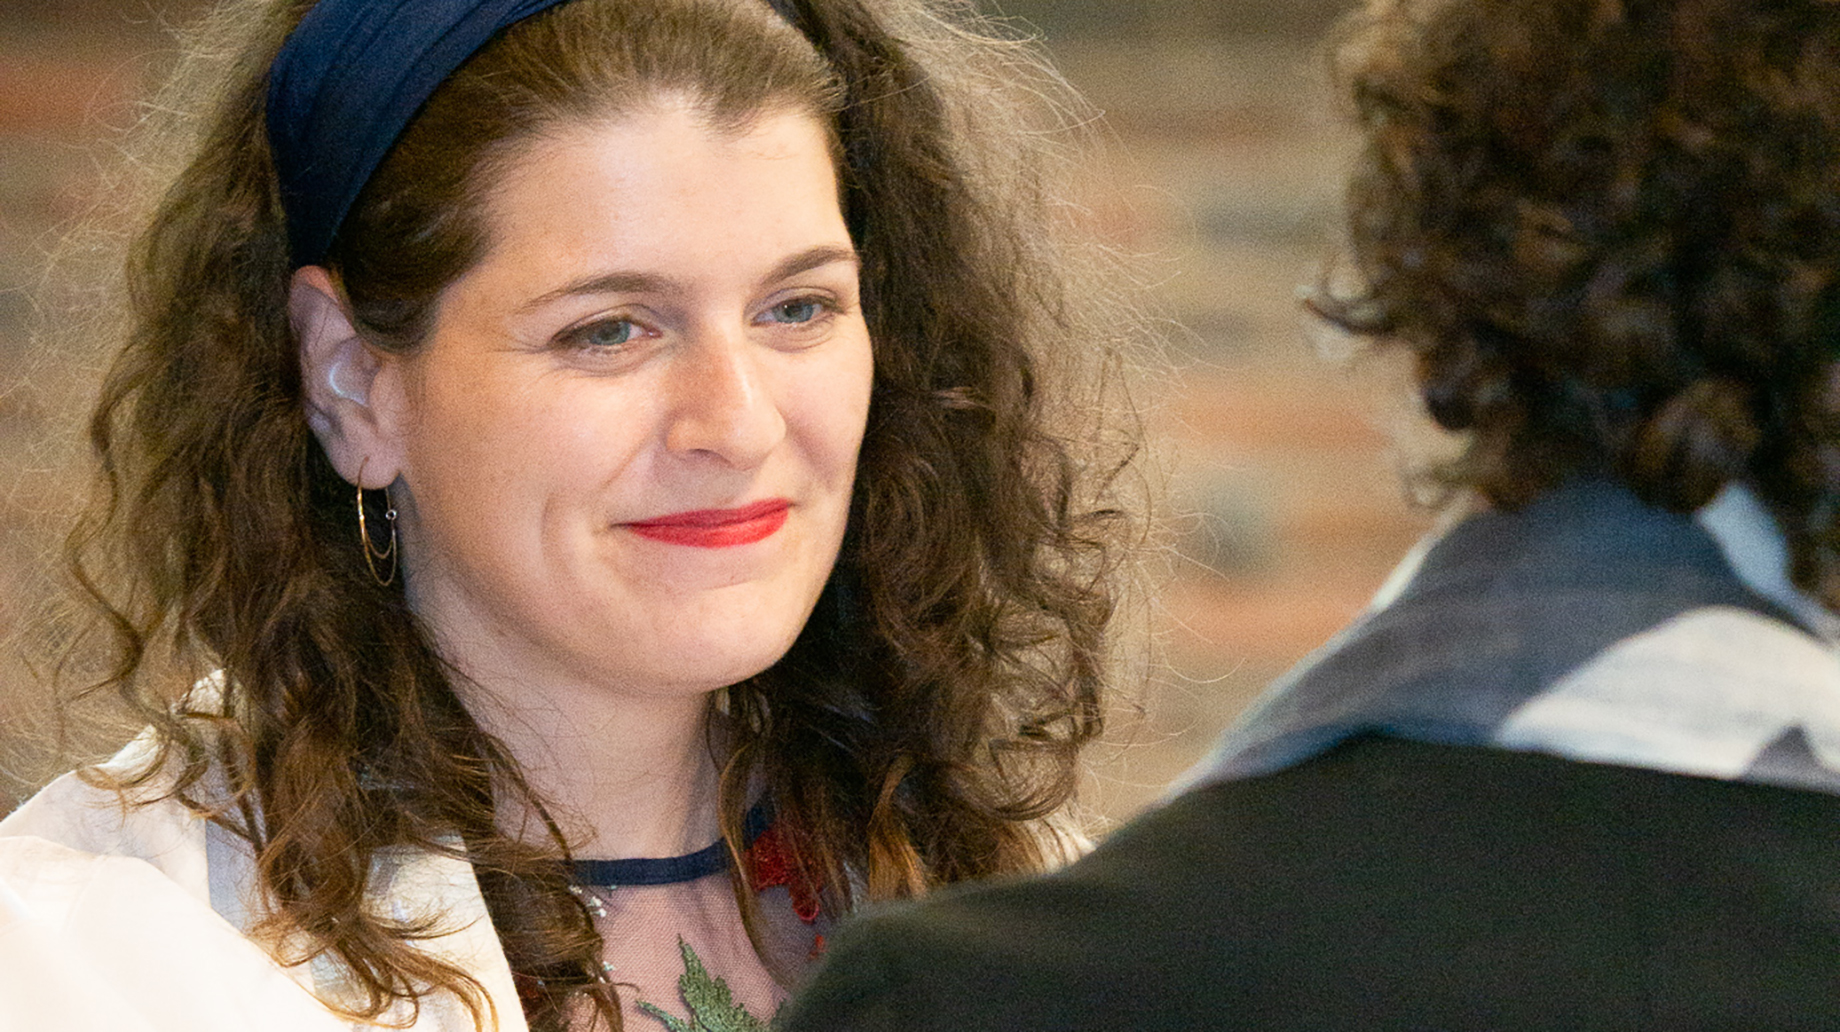 Rabbi Hayley Goldstein